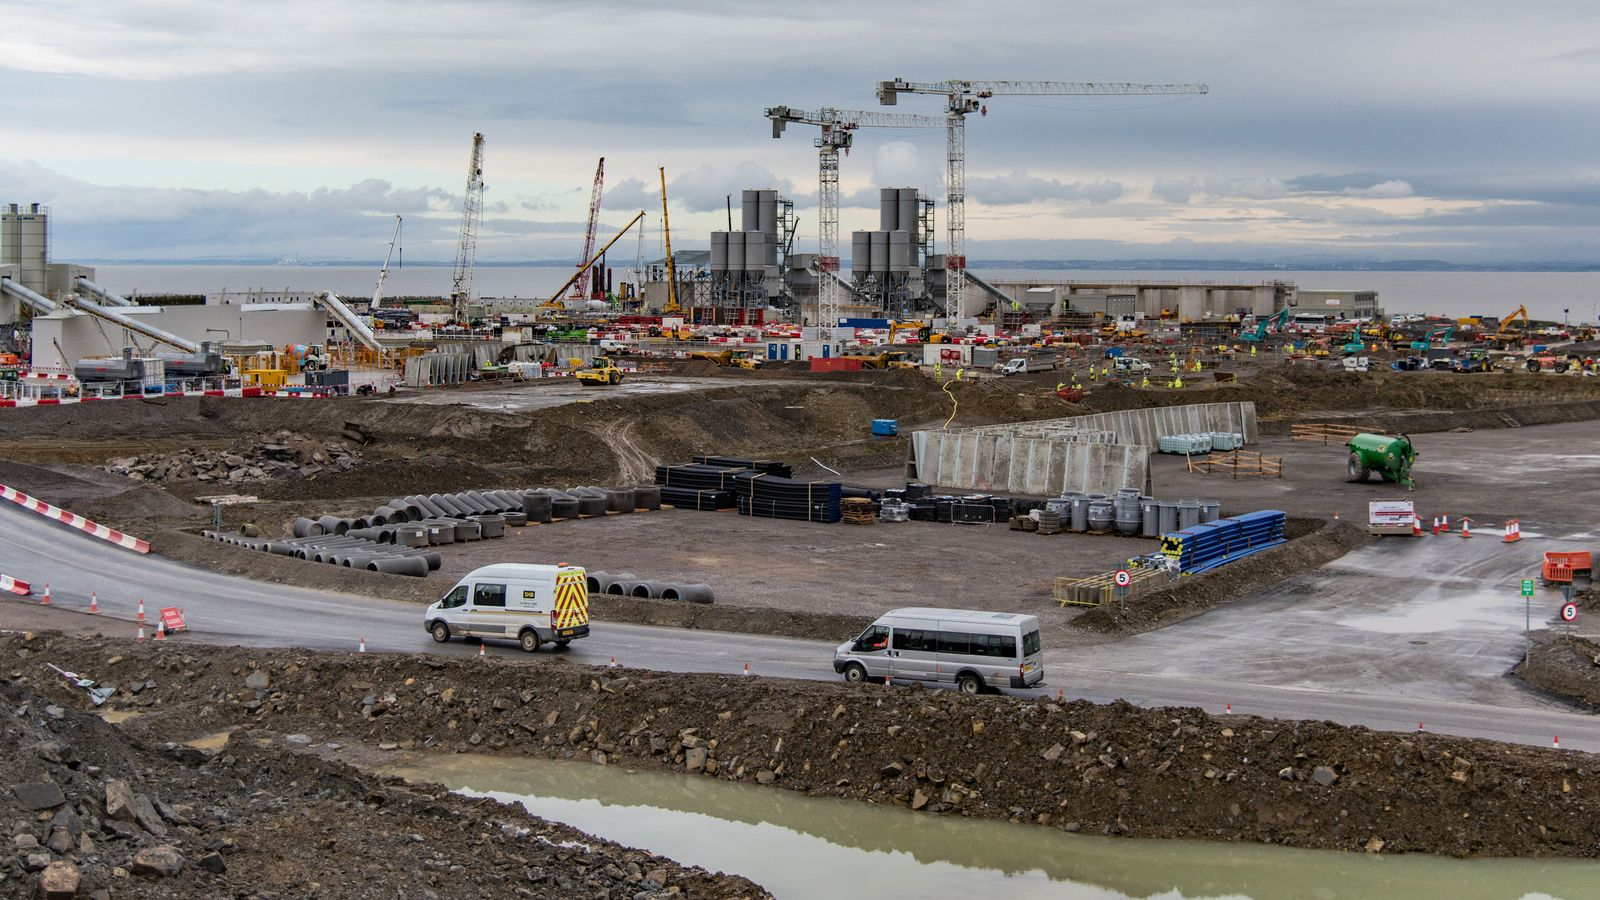 hinkley dating site A new time lapse video shows the progress on europe's biggest building site, with more than 3,000 workers coming and going every day hinkley point c is britain's.